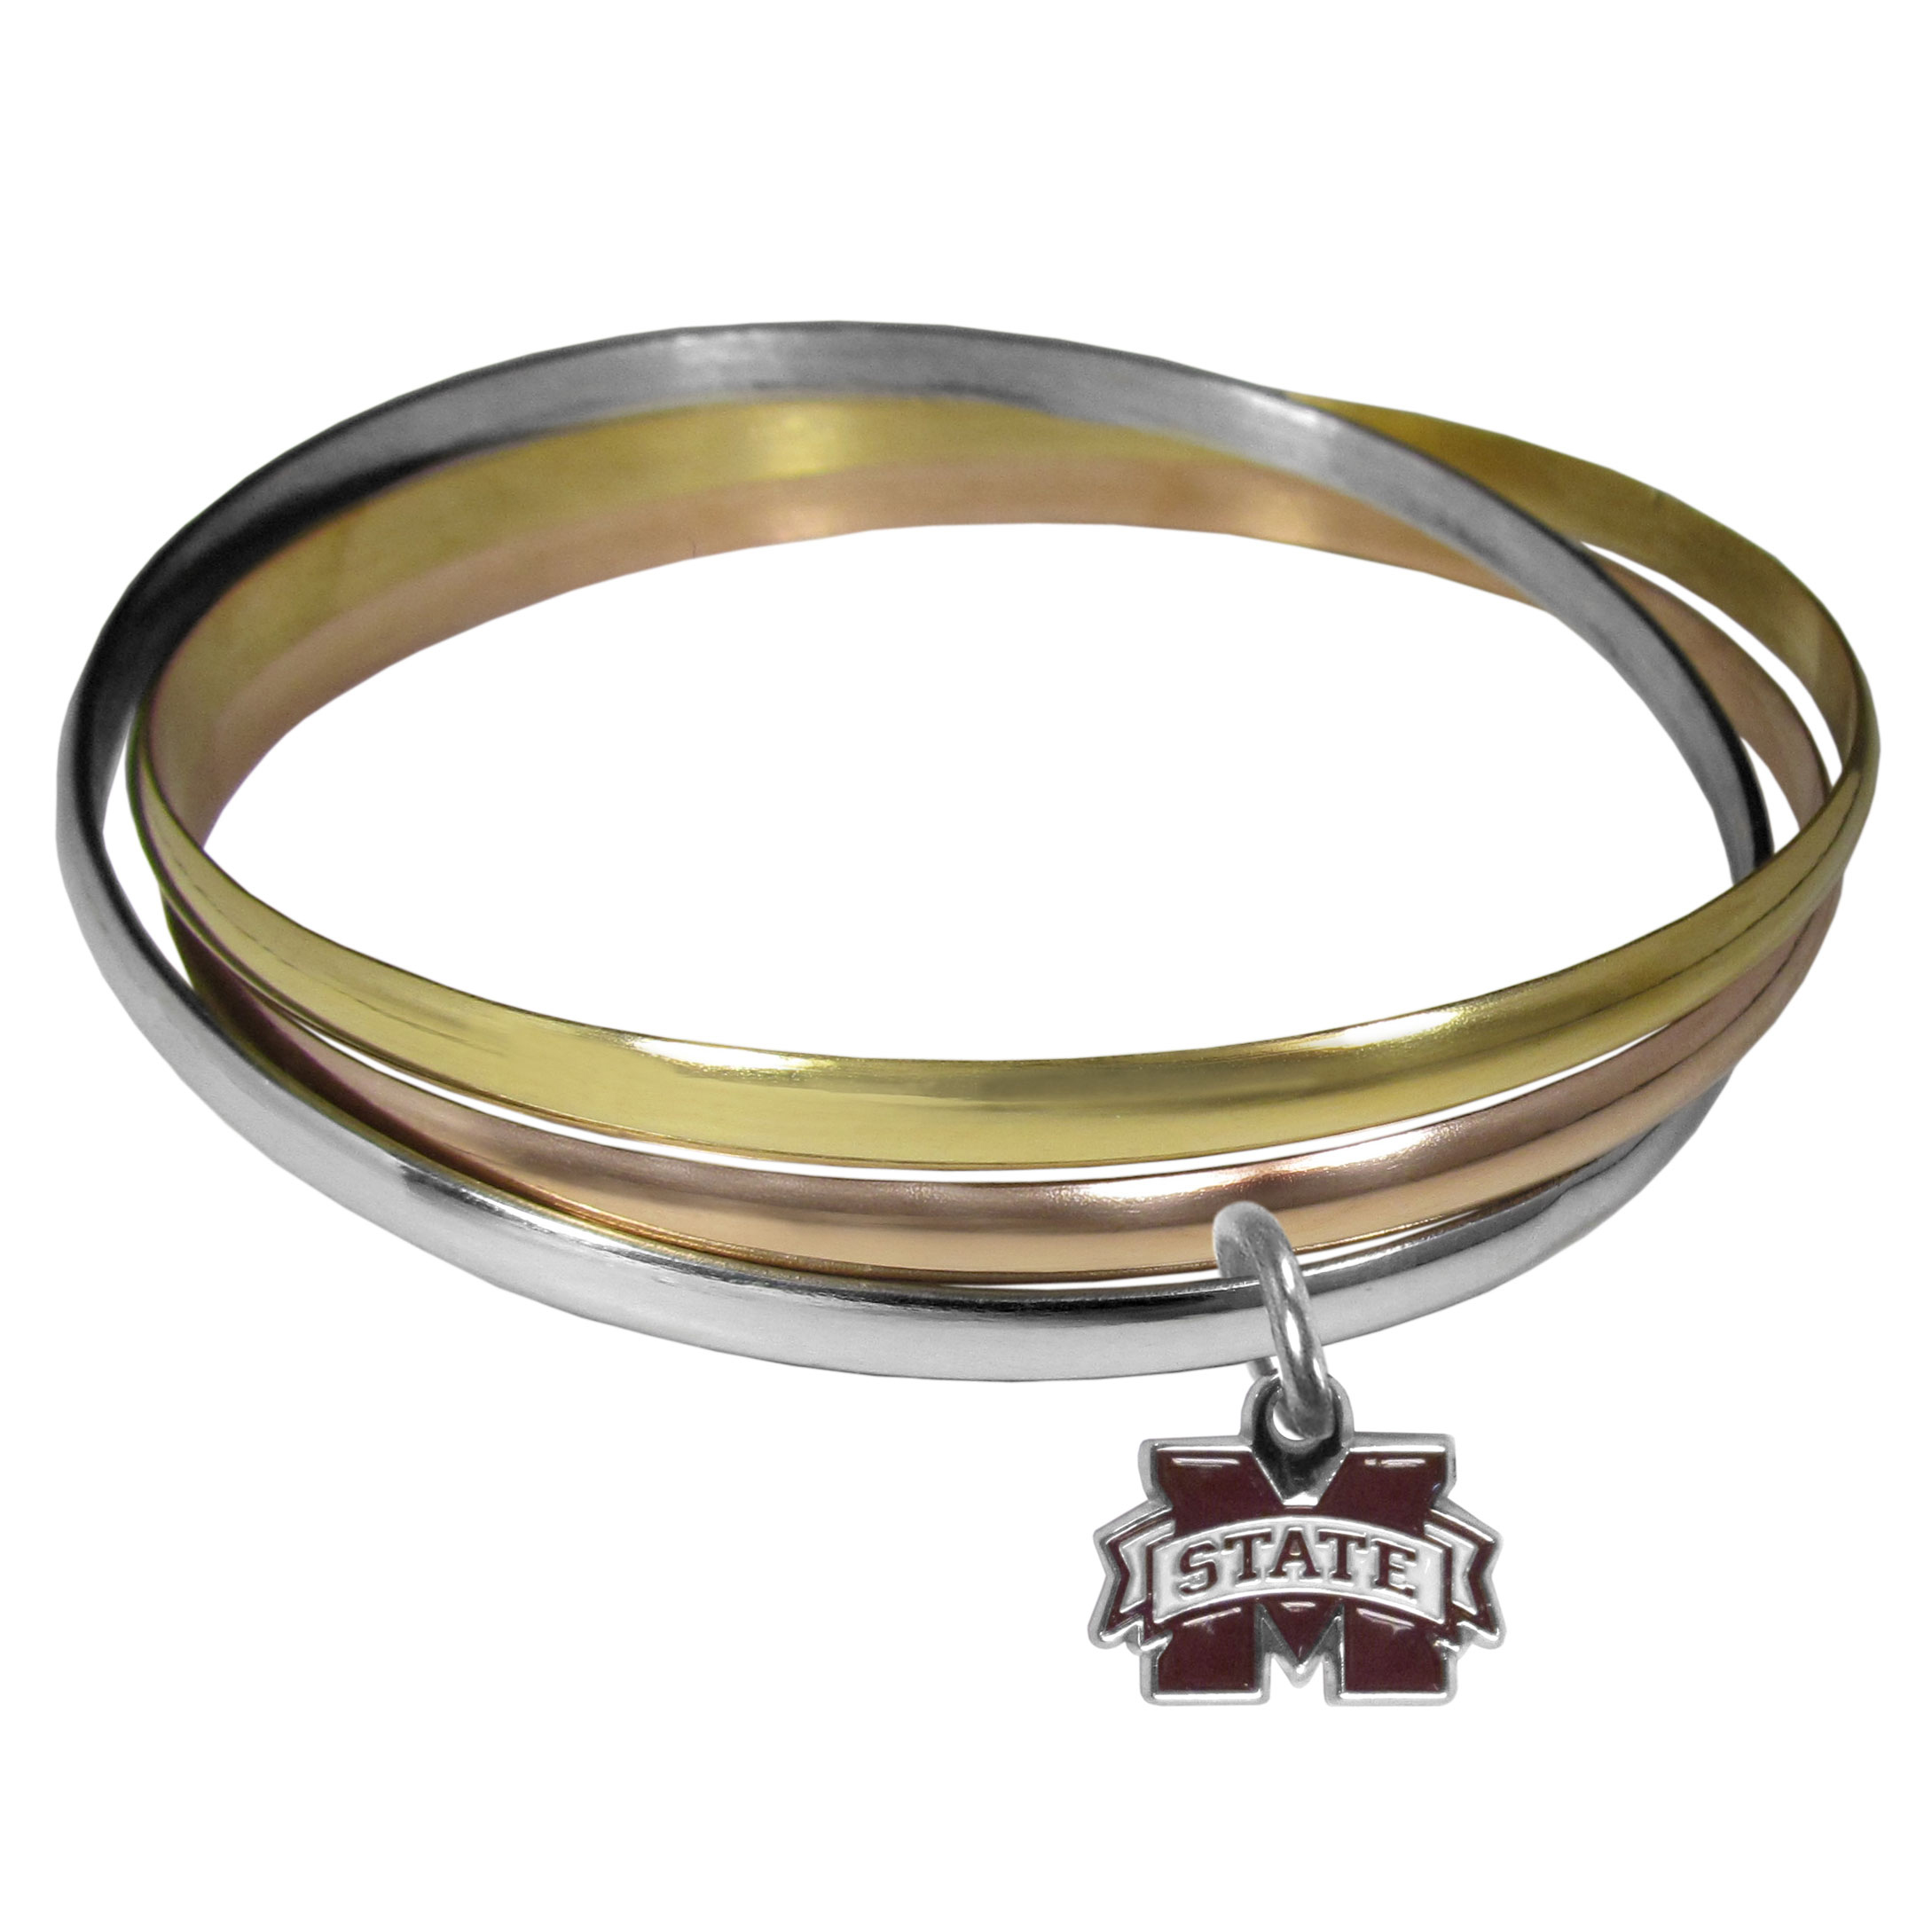 Mississippi St. Bulldogs Tri-color Bangle Bracelet - These beautiful bangles come in a interlocking style and feature a fully cast Mississippi St. Bulldogs charm with enameled team colors. The bracelet has a silver toned bangle, gold tone bangle and brass toned bangle.